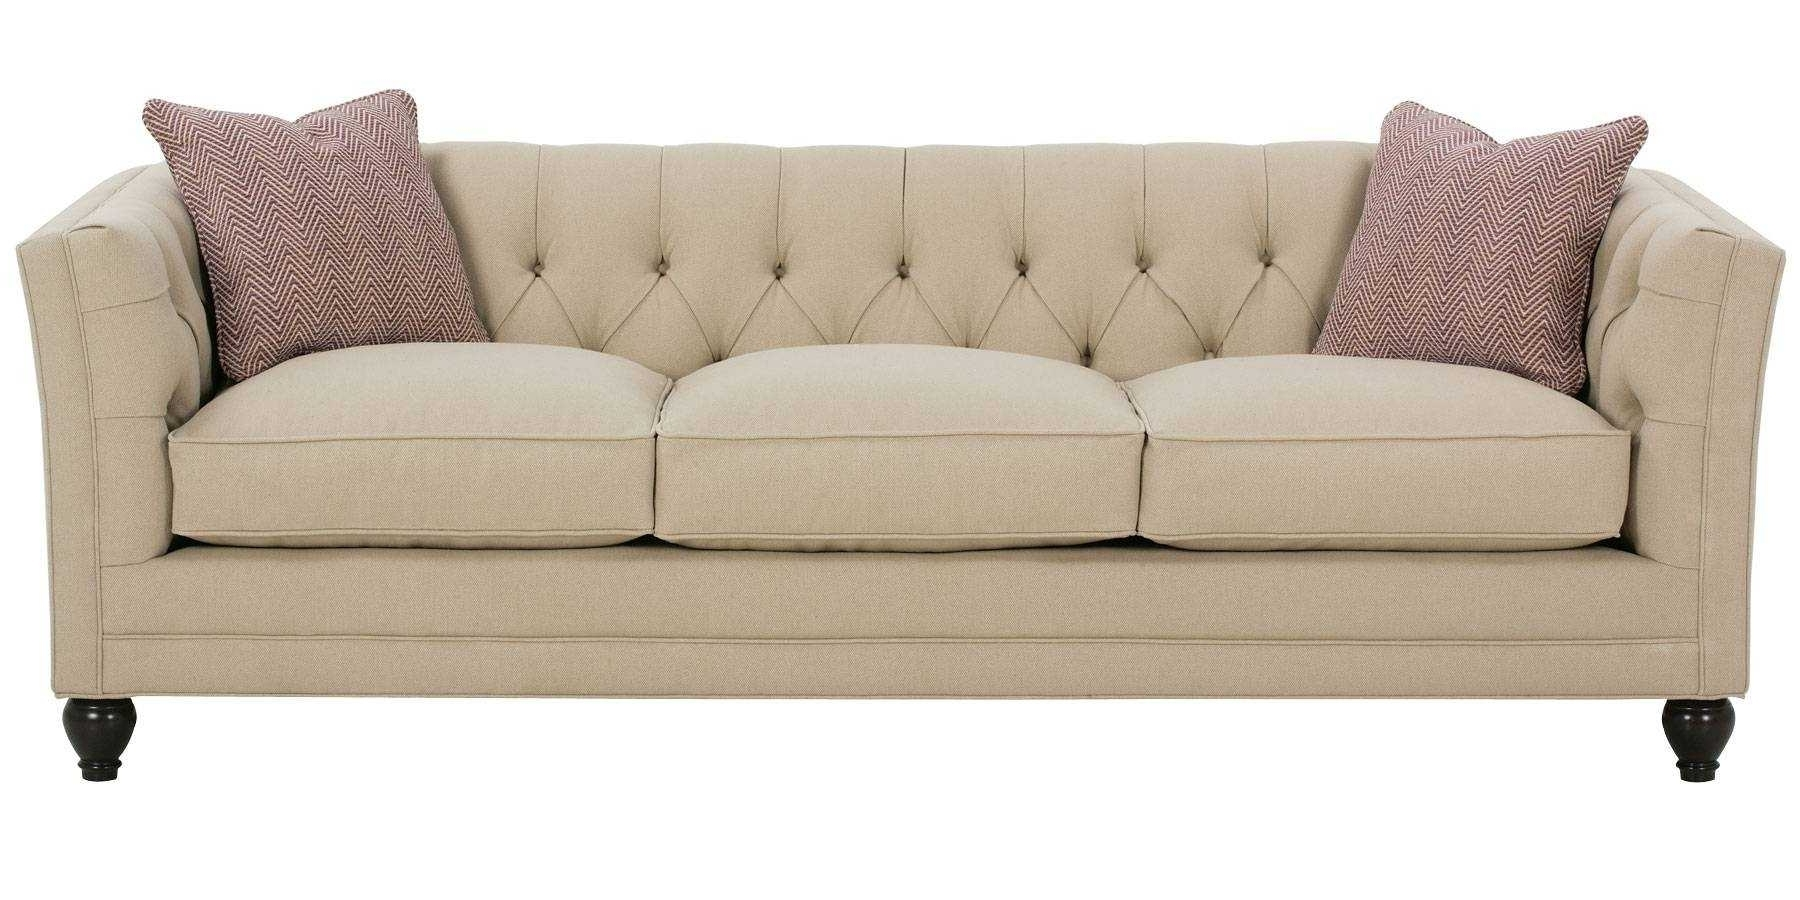 Trendy Best Apartment Couches (View 13 of 15)